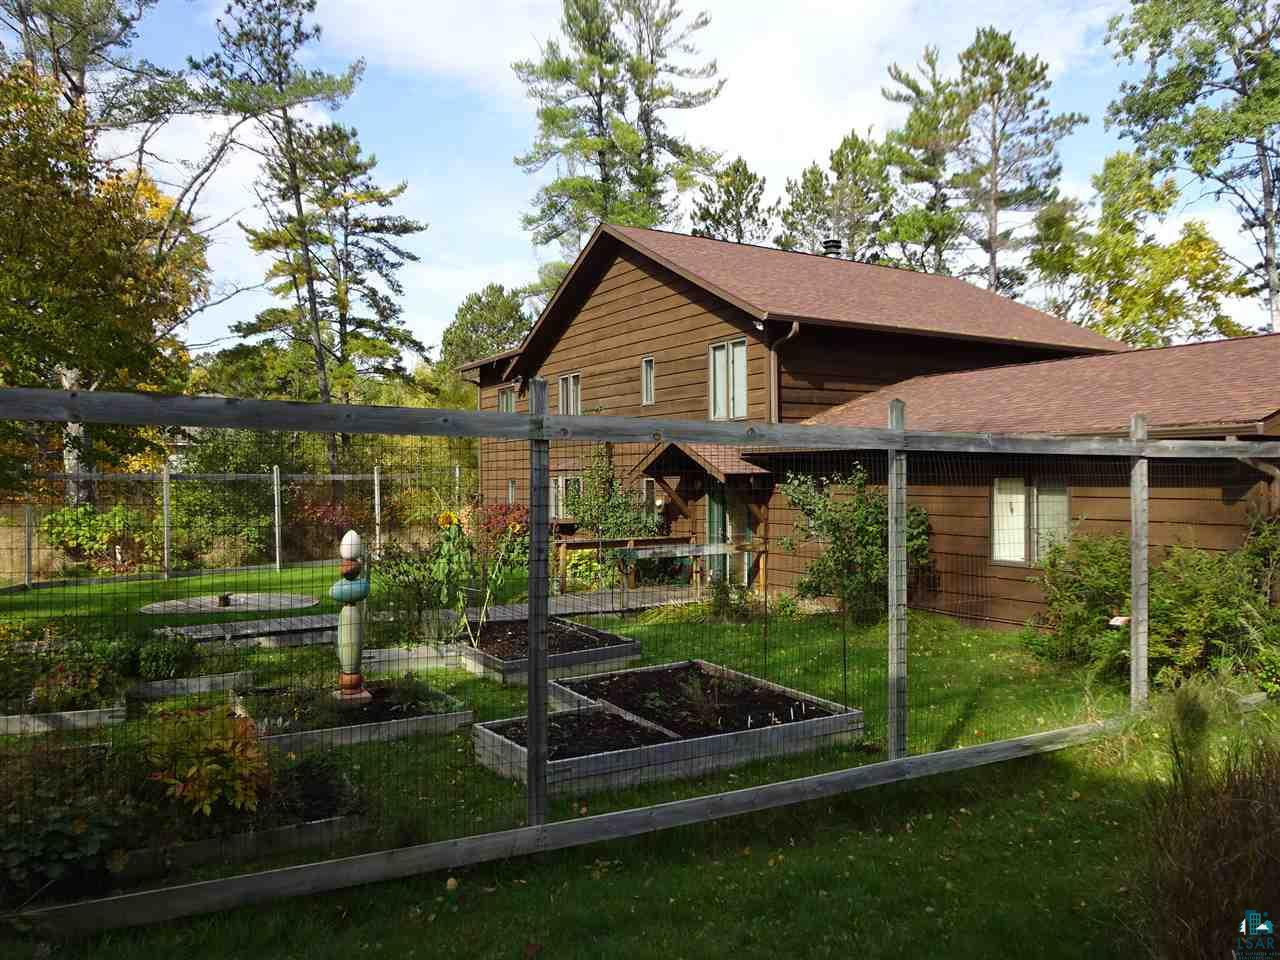 Ashland County WI Homes with Pond Frontage | Wisconsin Ponds for Sale